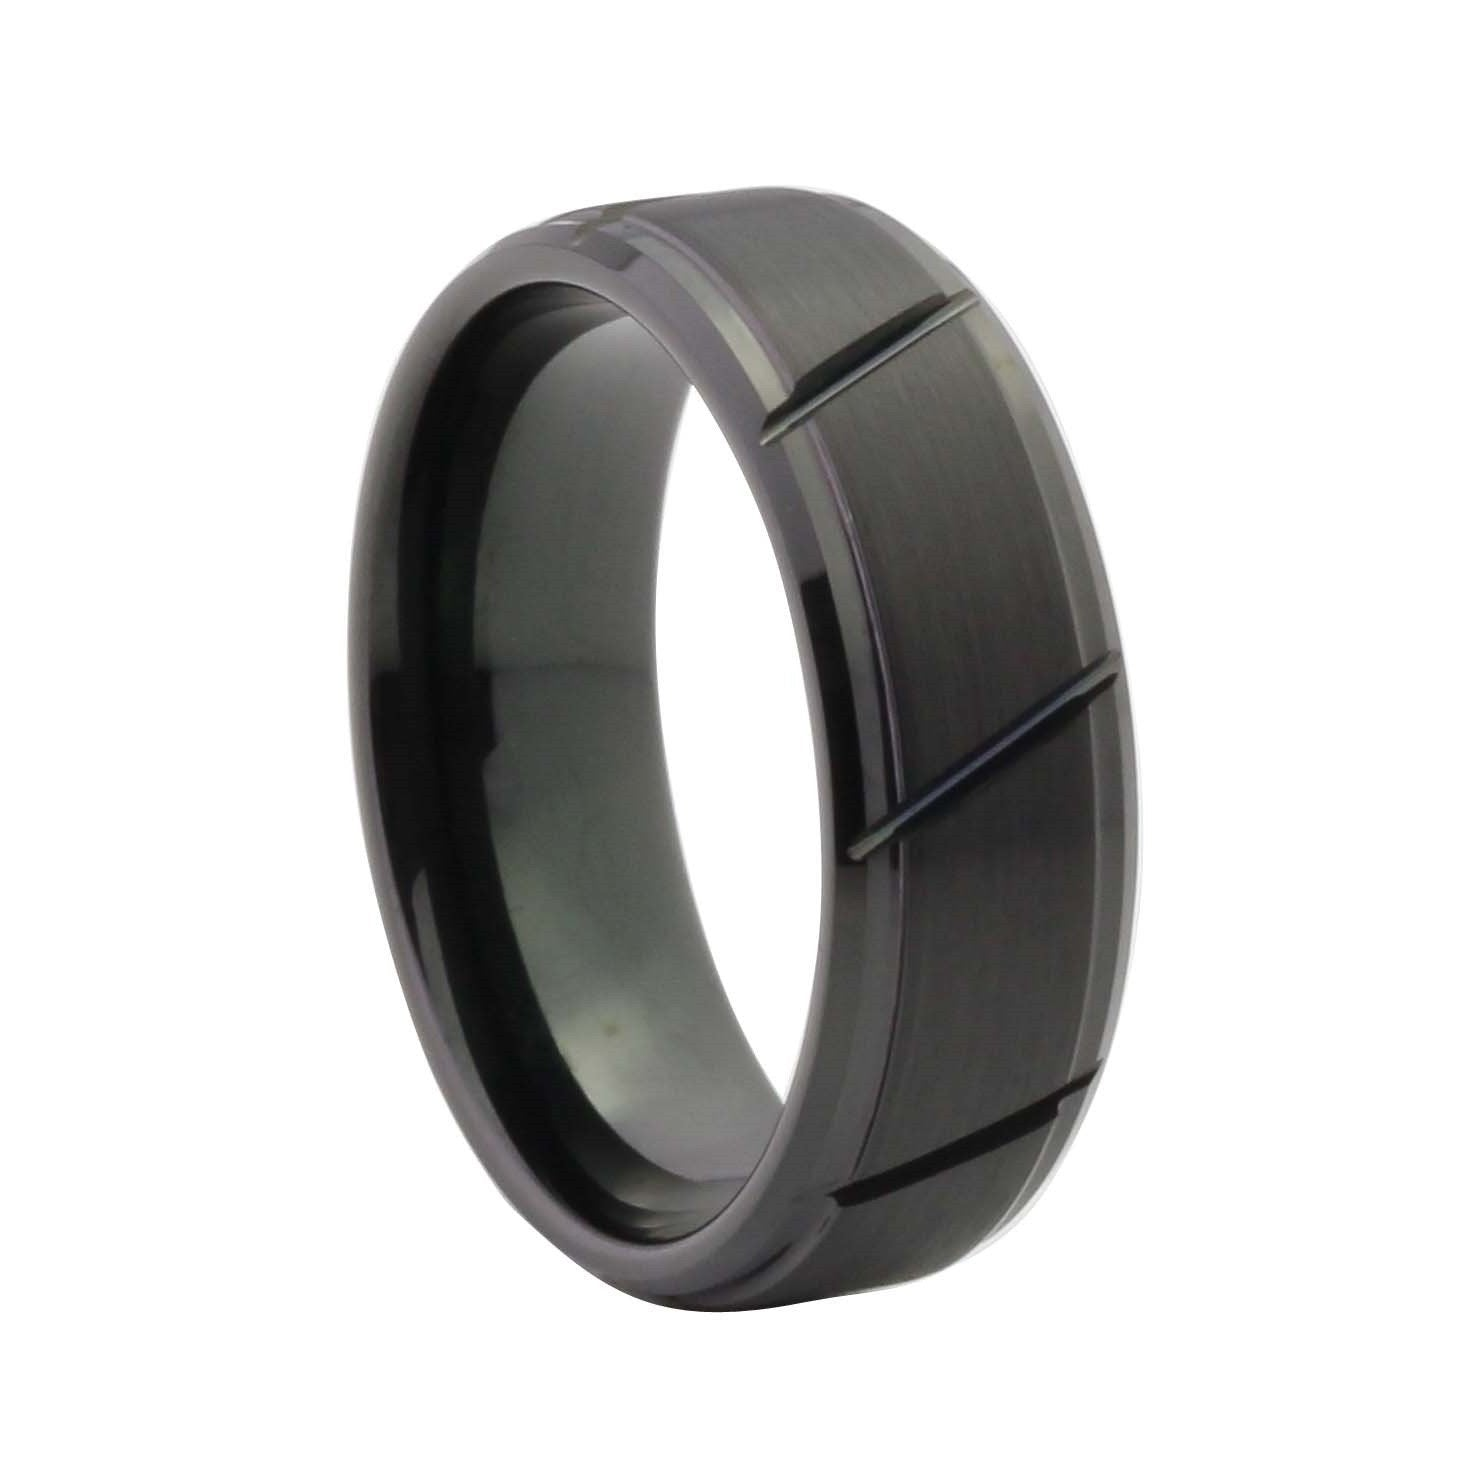 collection dark rings darkwood with gold wood product mens ring up image blacksquare square black signetring signet men angle north